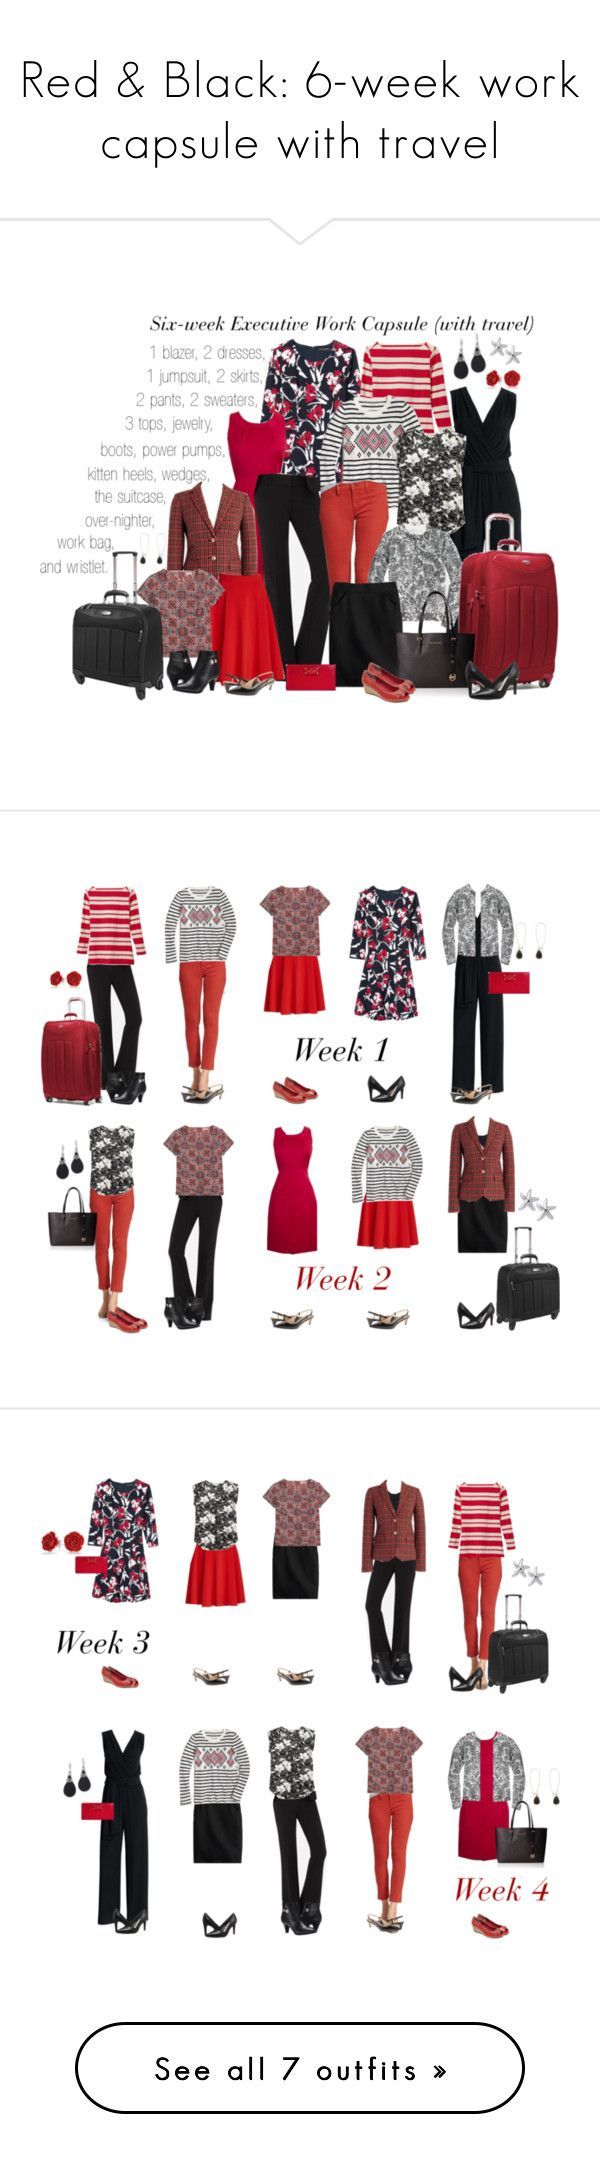 """""""Red & Black: 6-week work capsule with travel"""" by kristin727 on Polyvore featuring Canvas by Lands' End, J.Crew, Banana Republic, Samsonite, Naturalizer, Franco Sarto, Cole Haan and Kate Spade"""